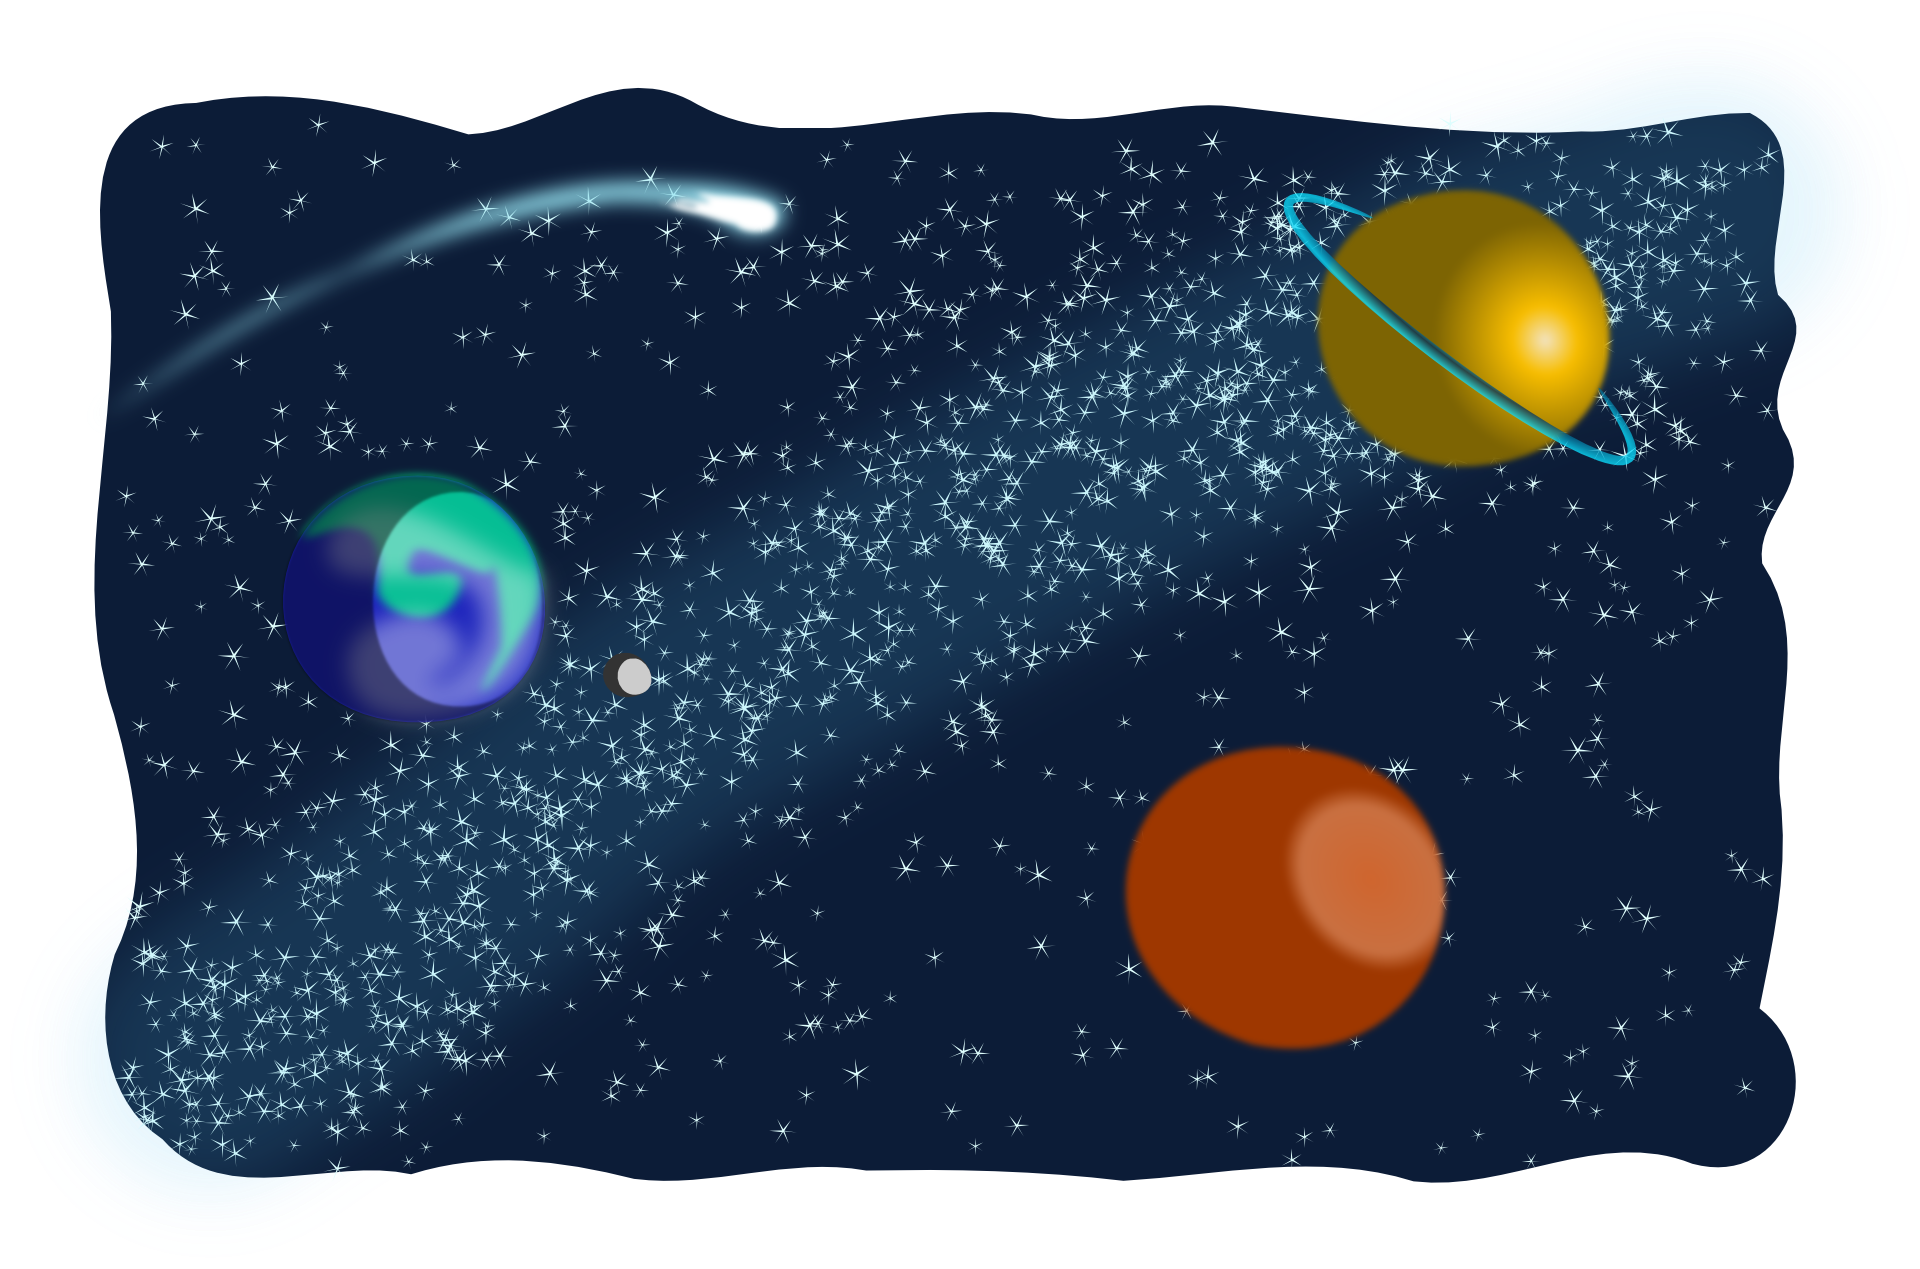 world clip art. Galaxy clipart outer space